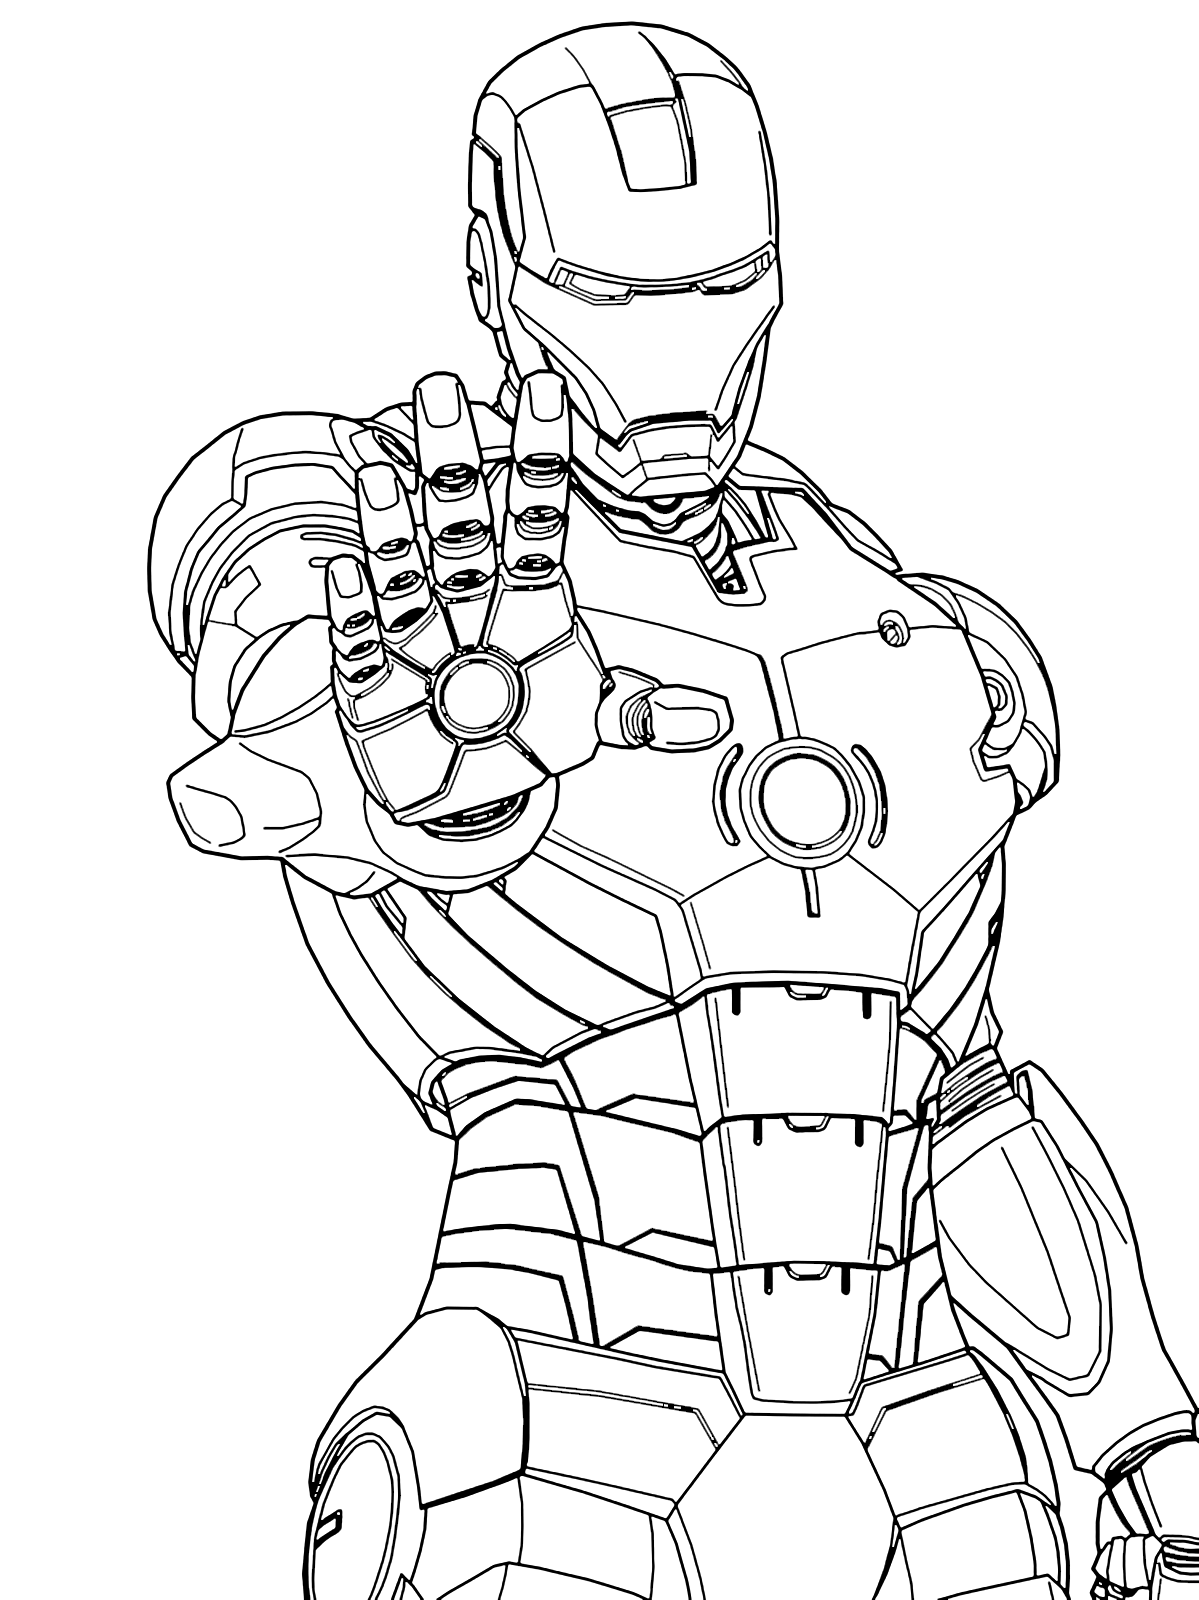 iron man coloring page coloring pages for kids free images iron man avengers iron coloring man page